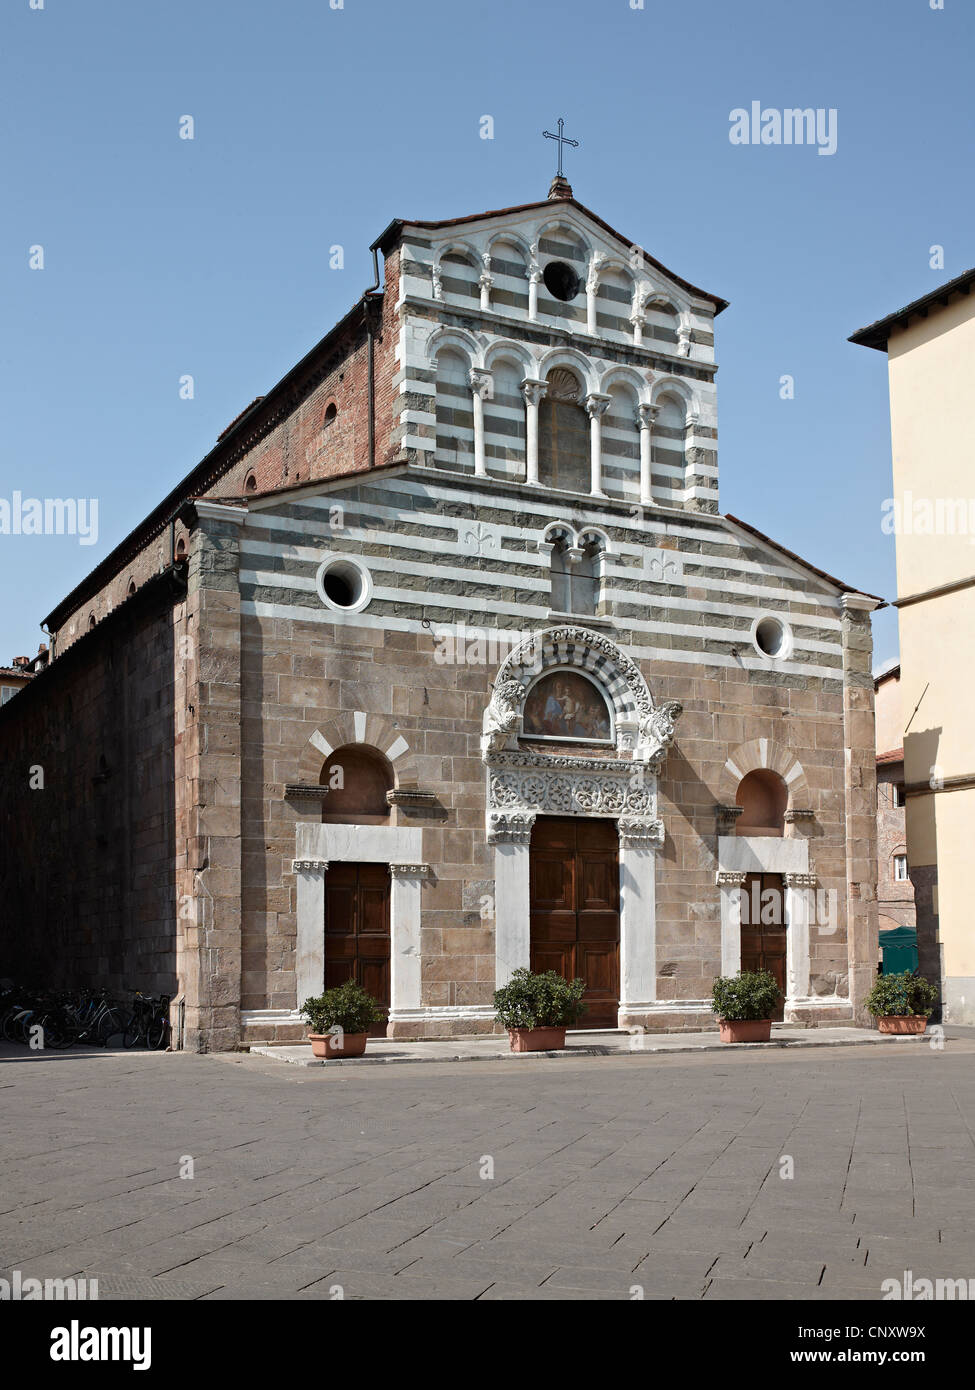 Church of San Giusto, Lucca, Italy. 12th century façade with black and white stripes - Stock Image